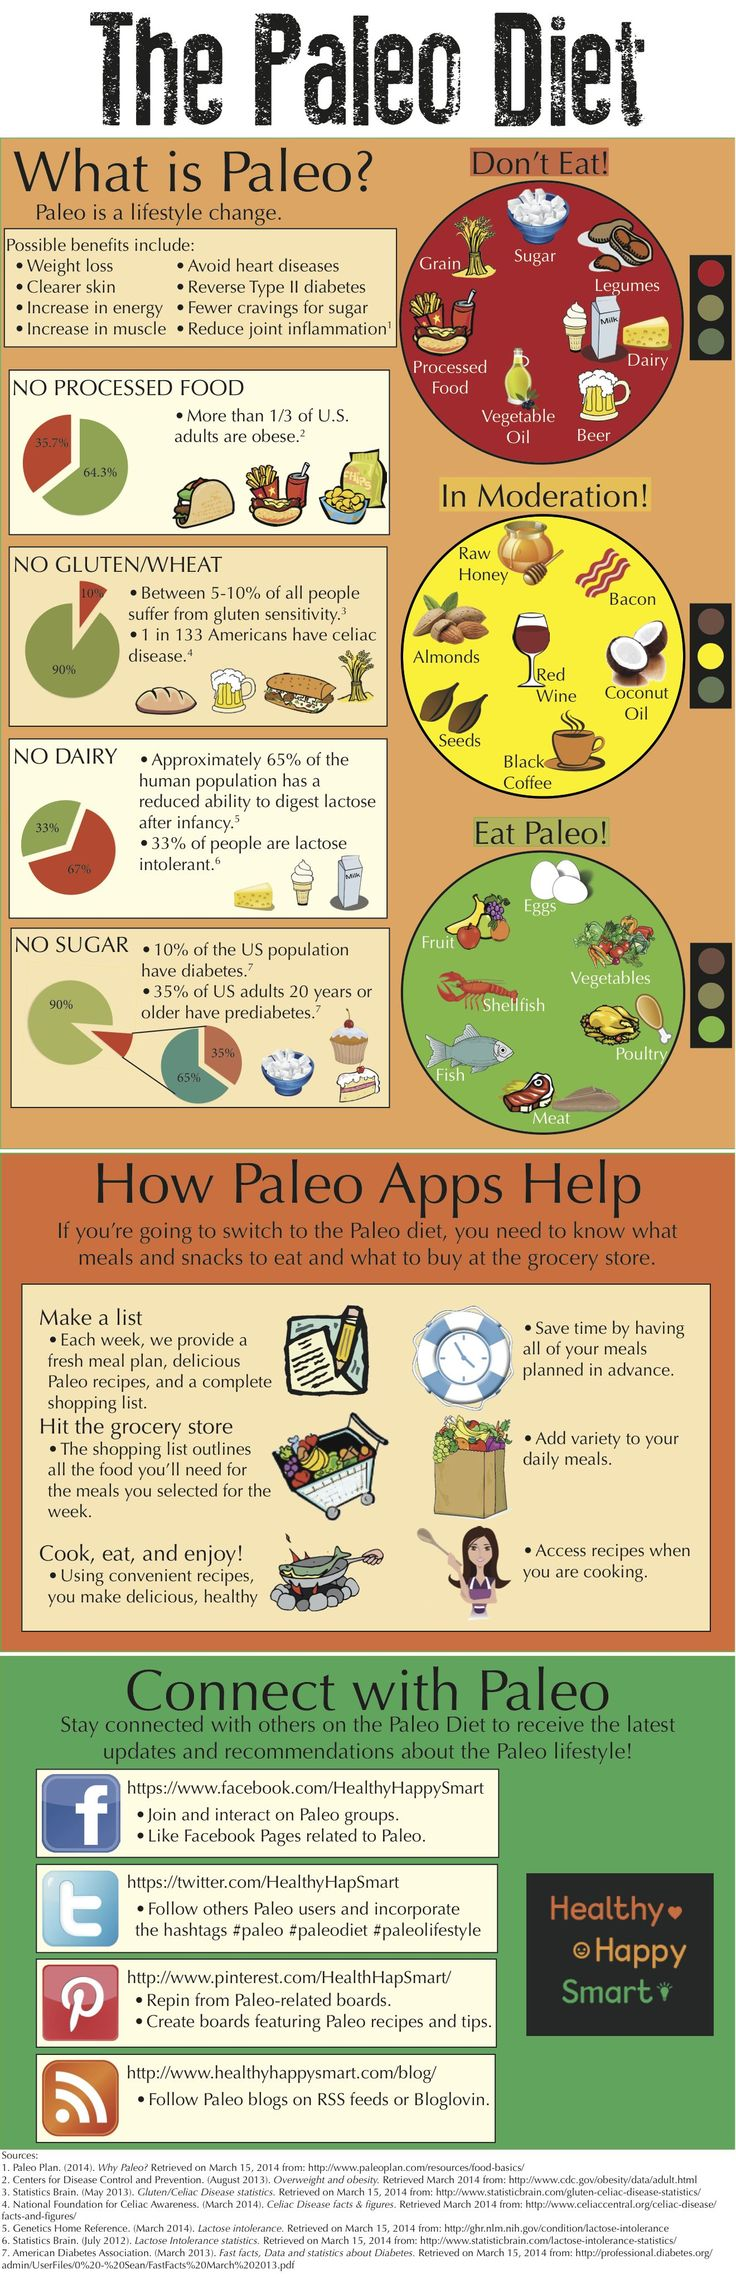 Paleo Diet Infographic – Guide to Paleo